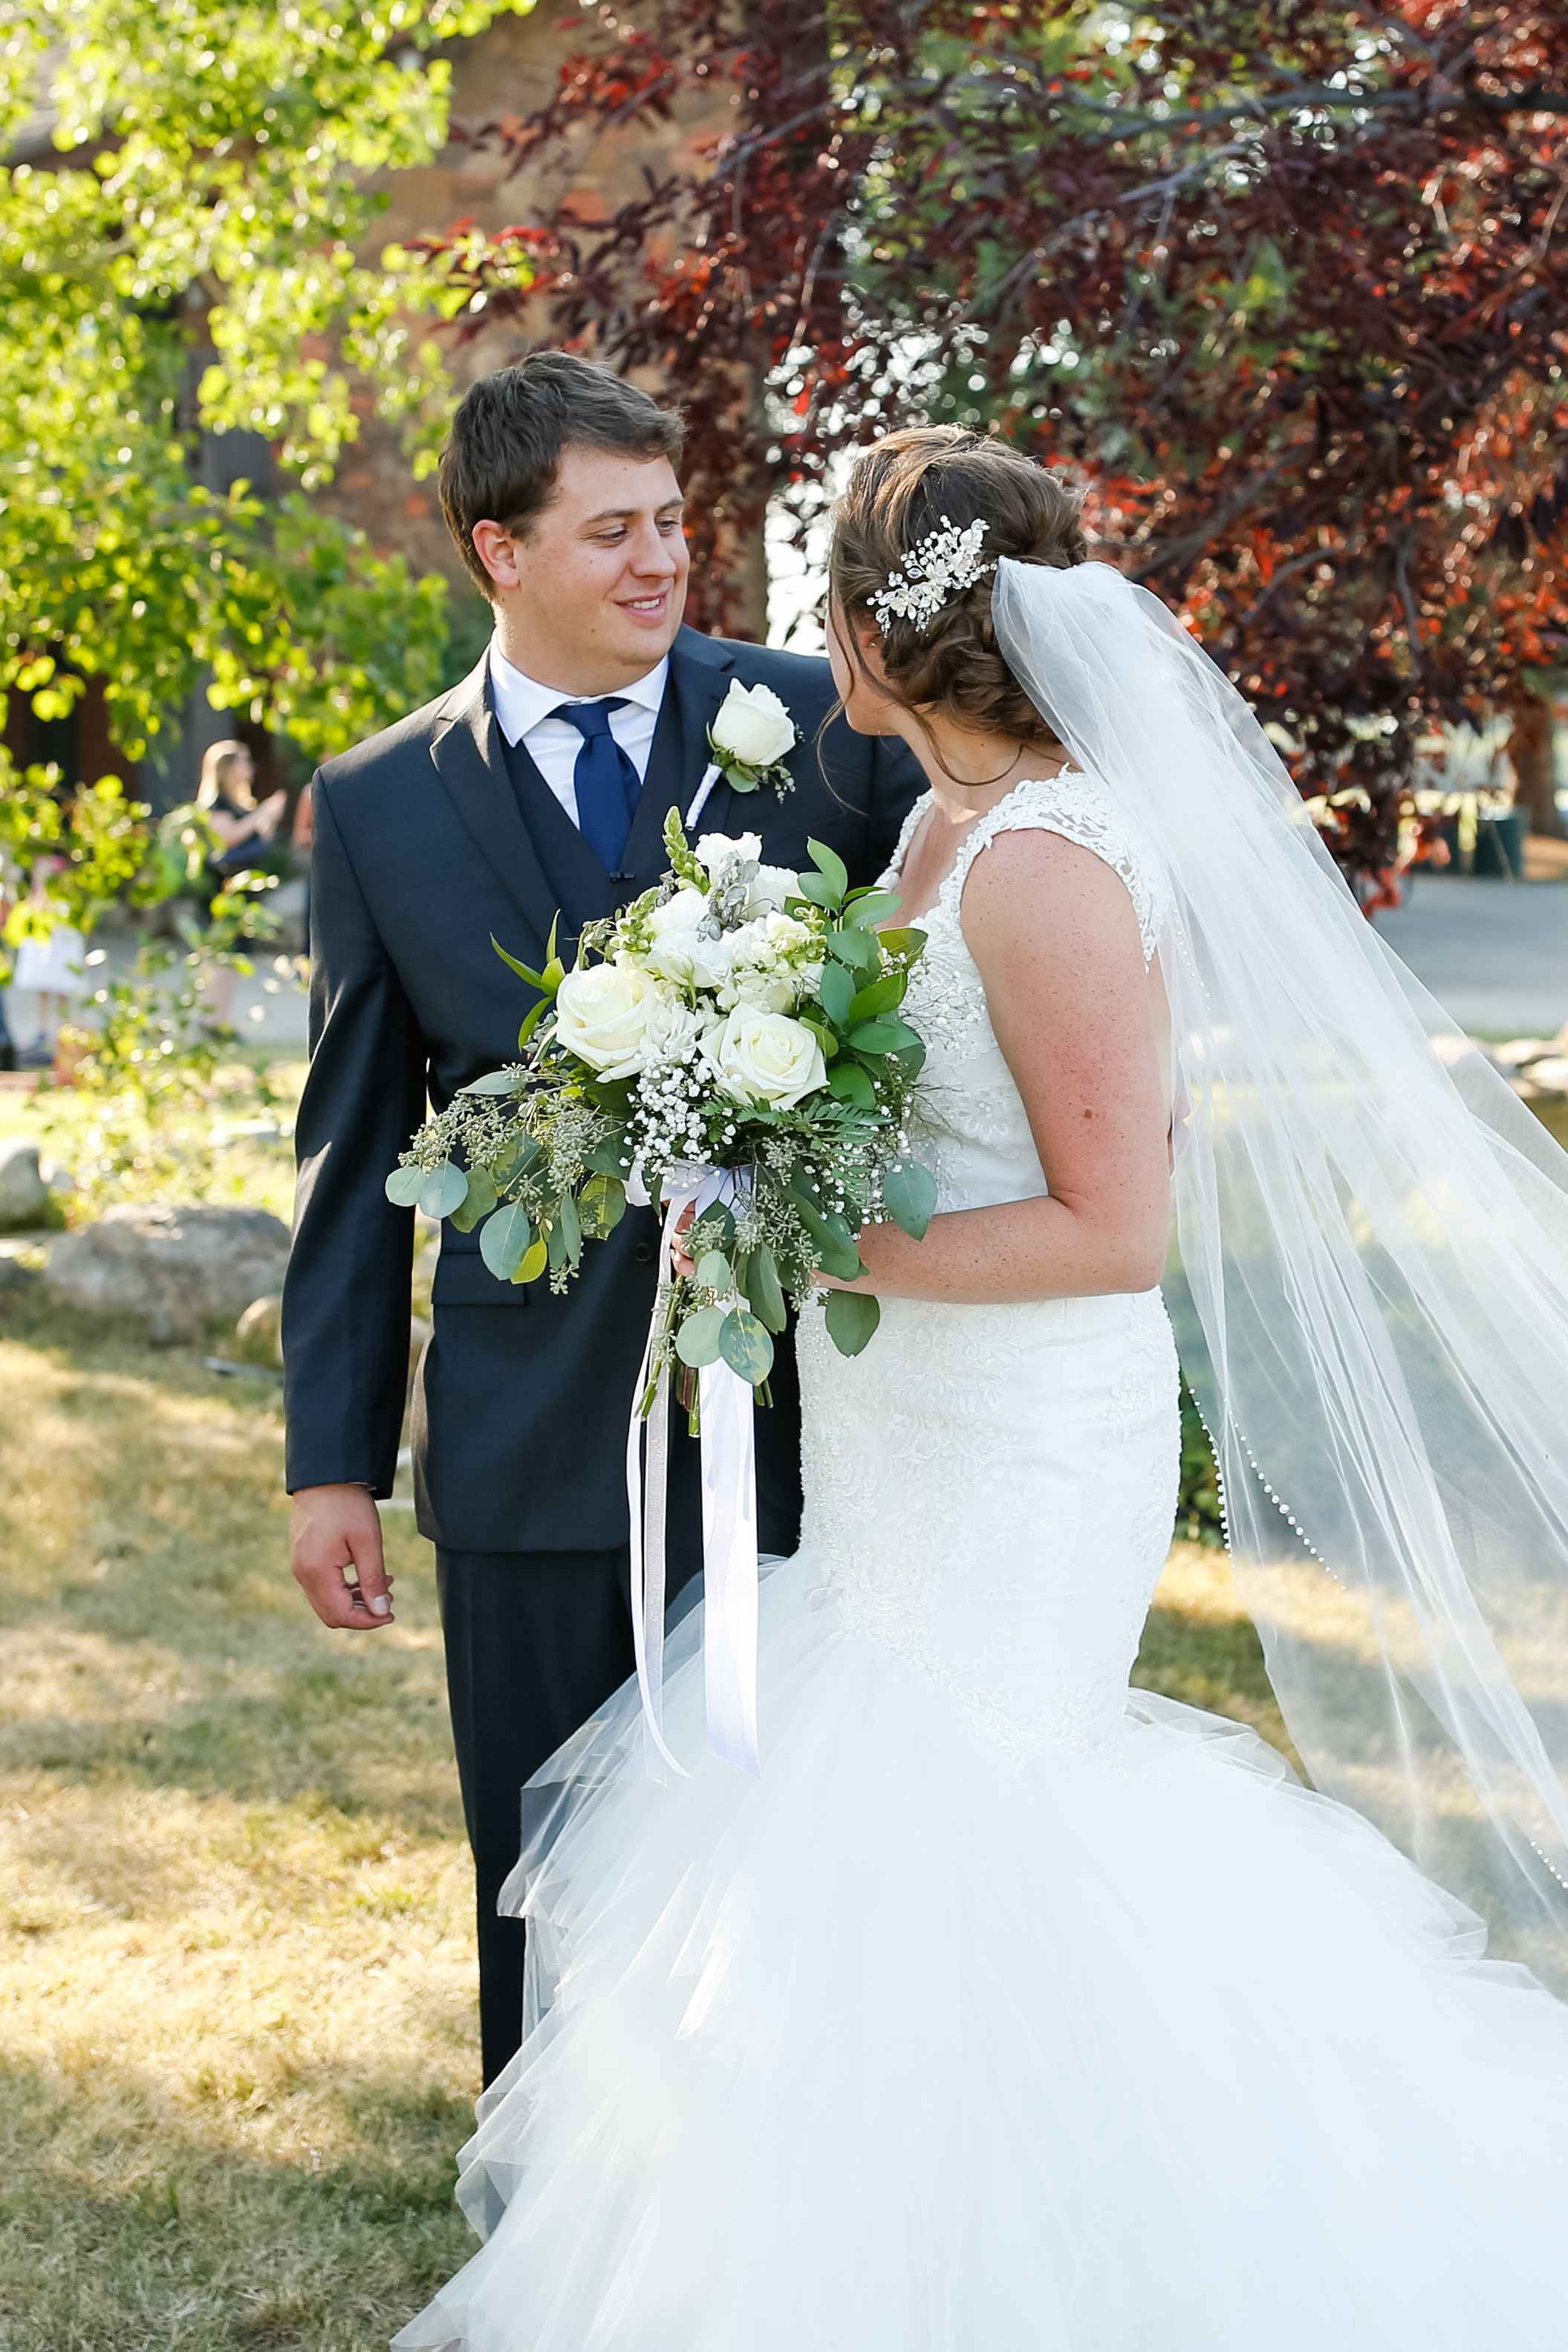 355-HENDRICKS_WEDDING.jpg